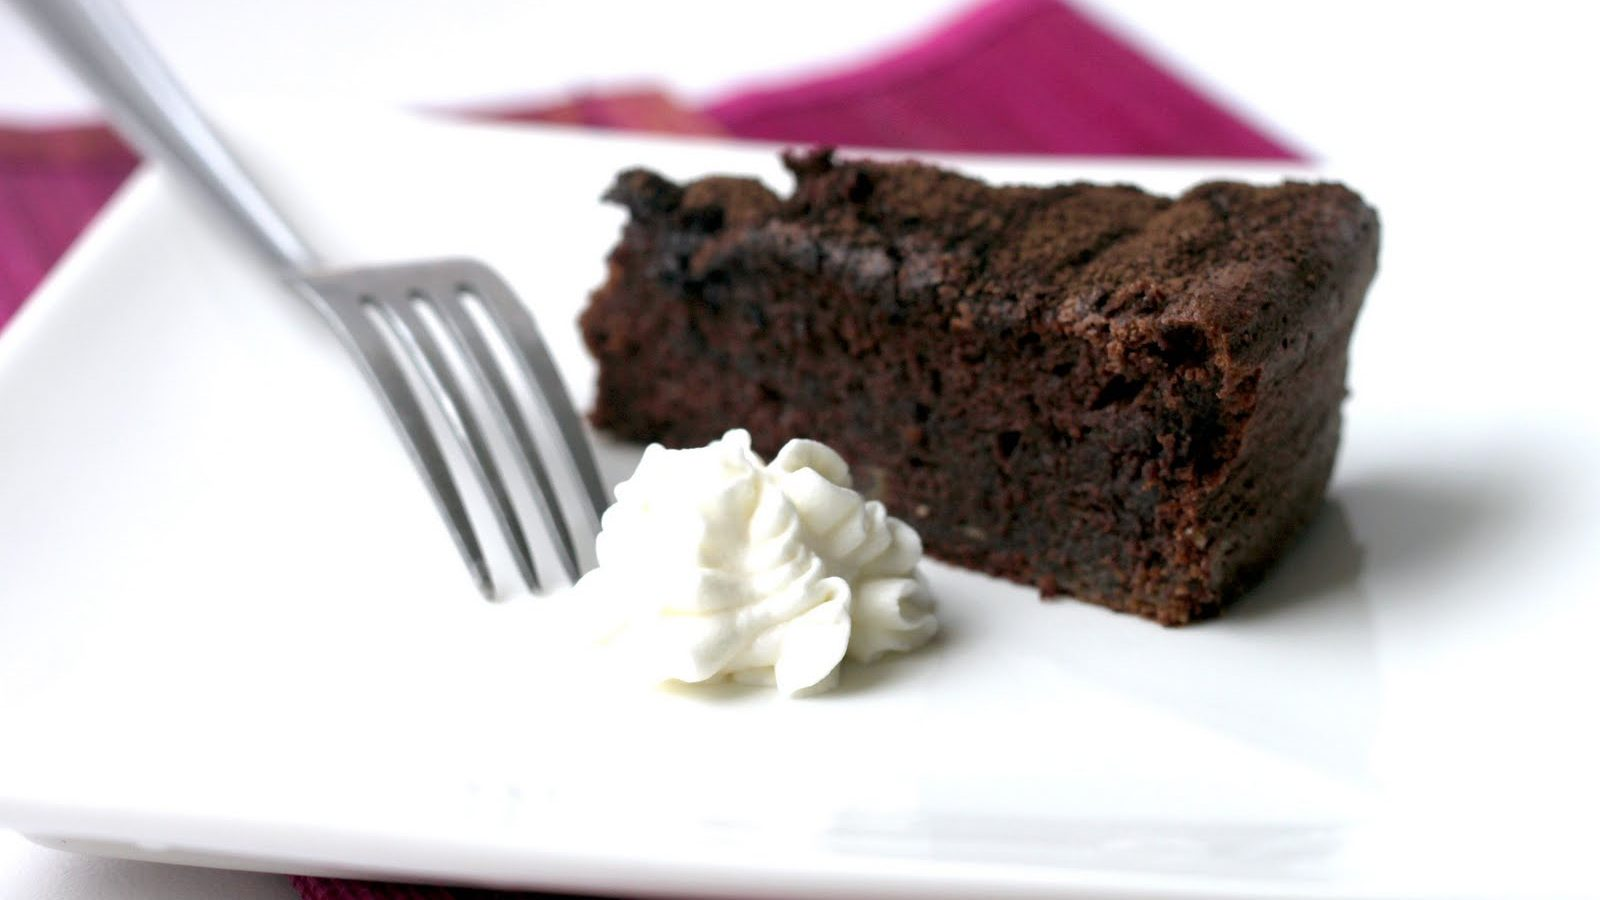 A piece of chocolate cake with cream on white plate with a fork.